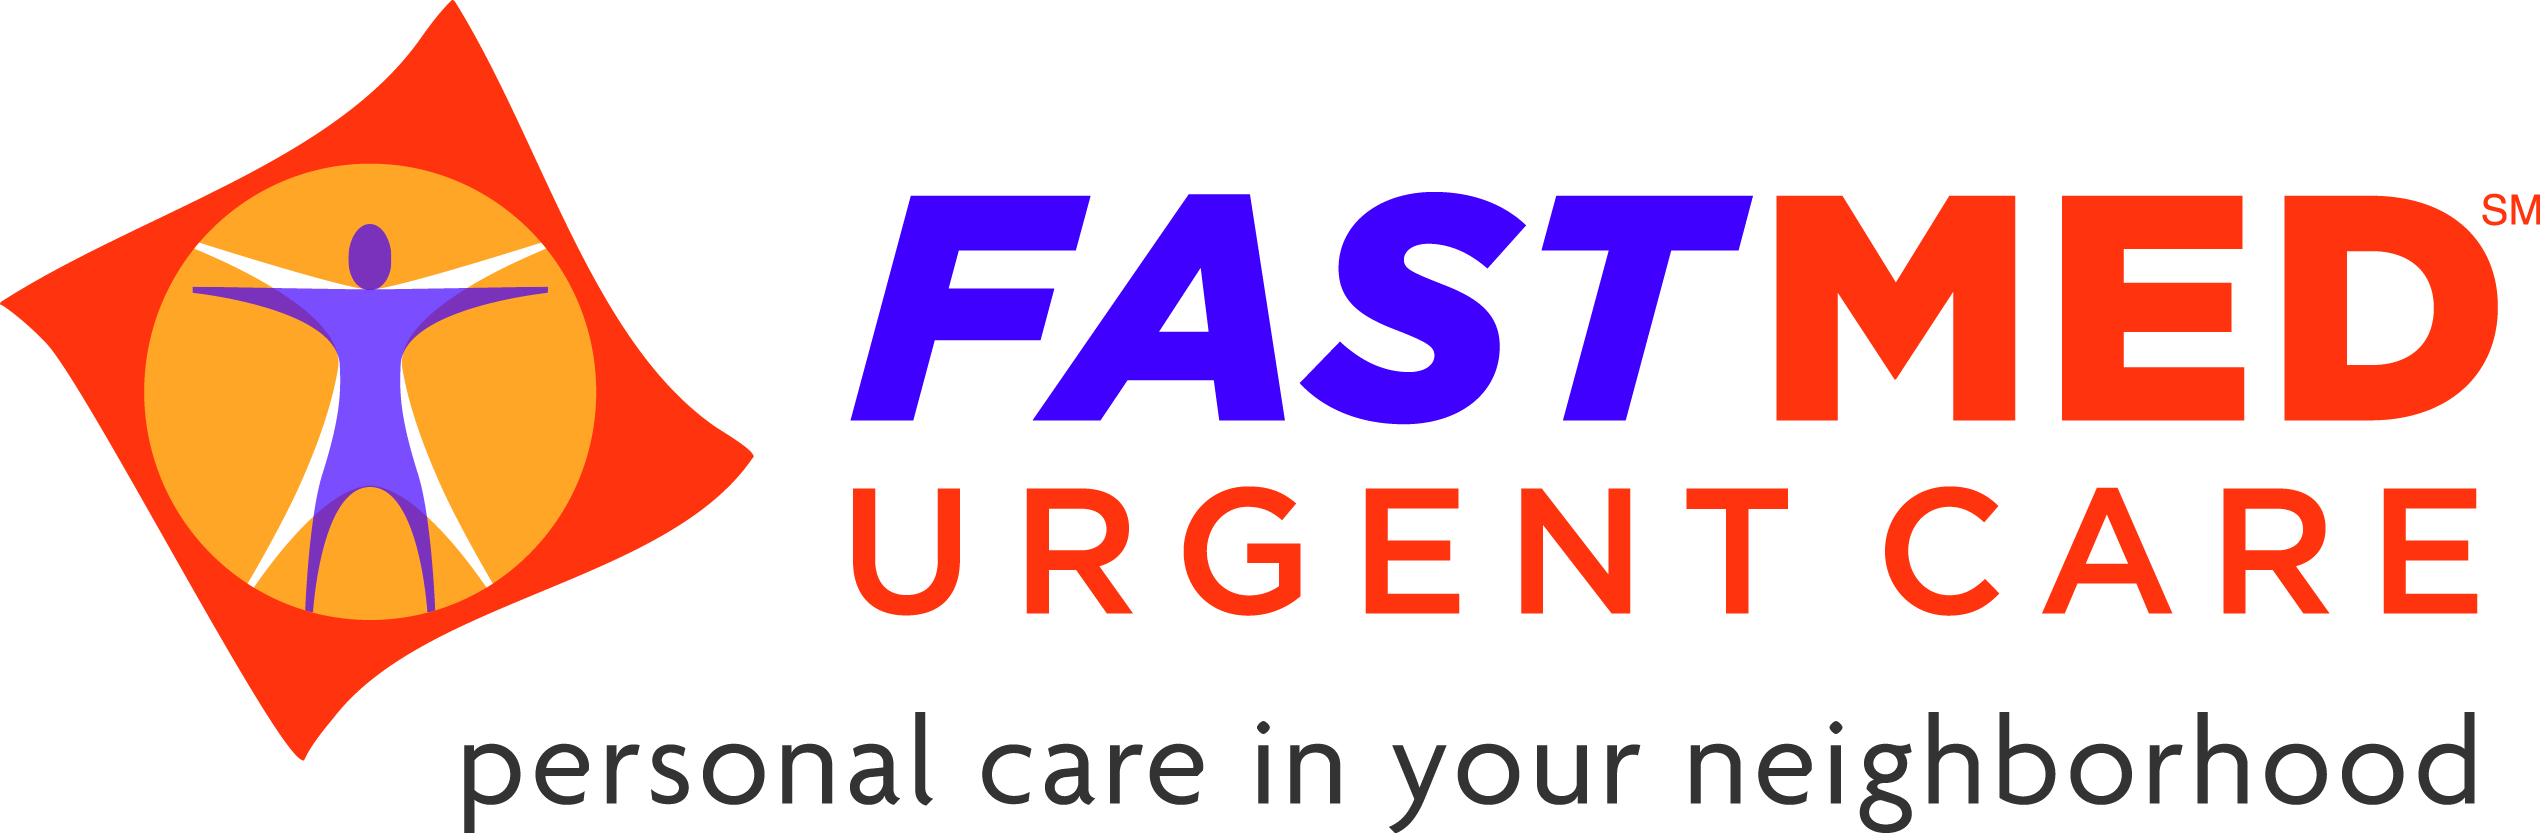 FastMed logo personal care